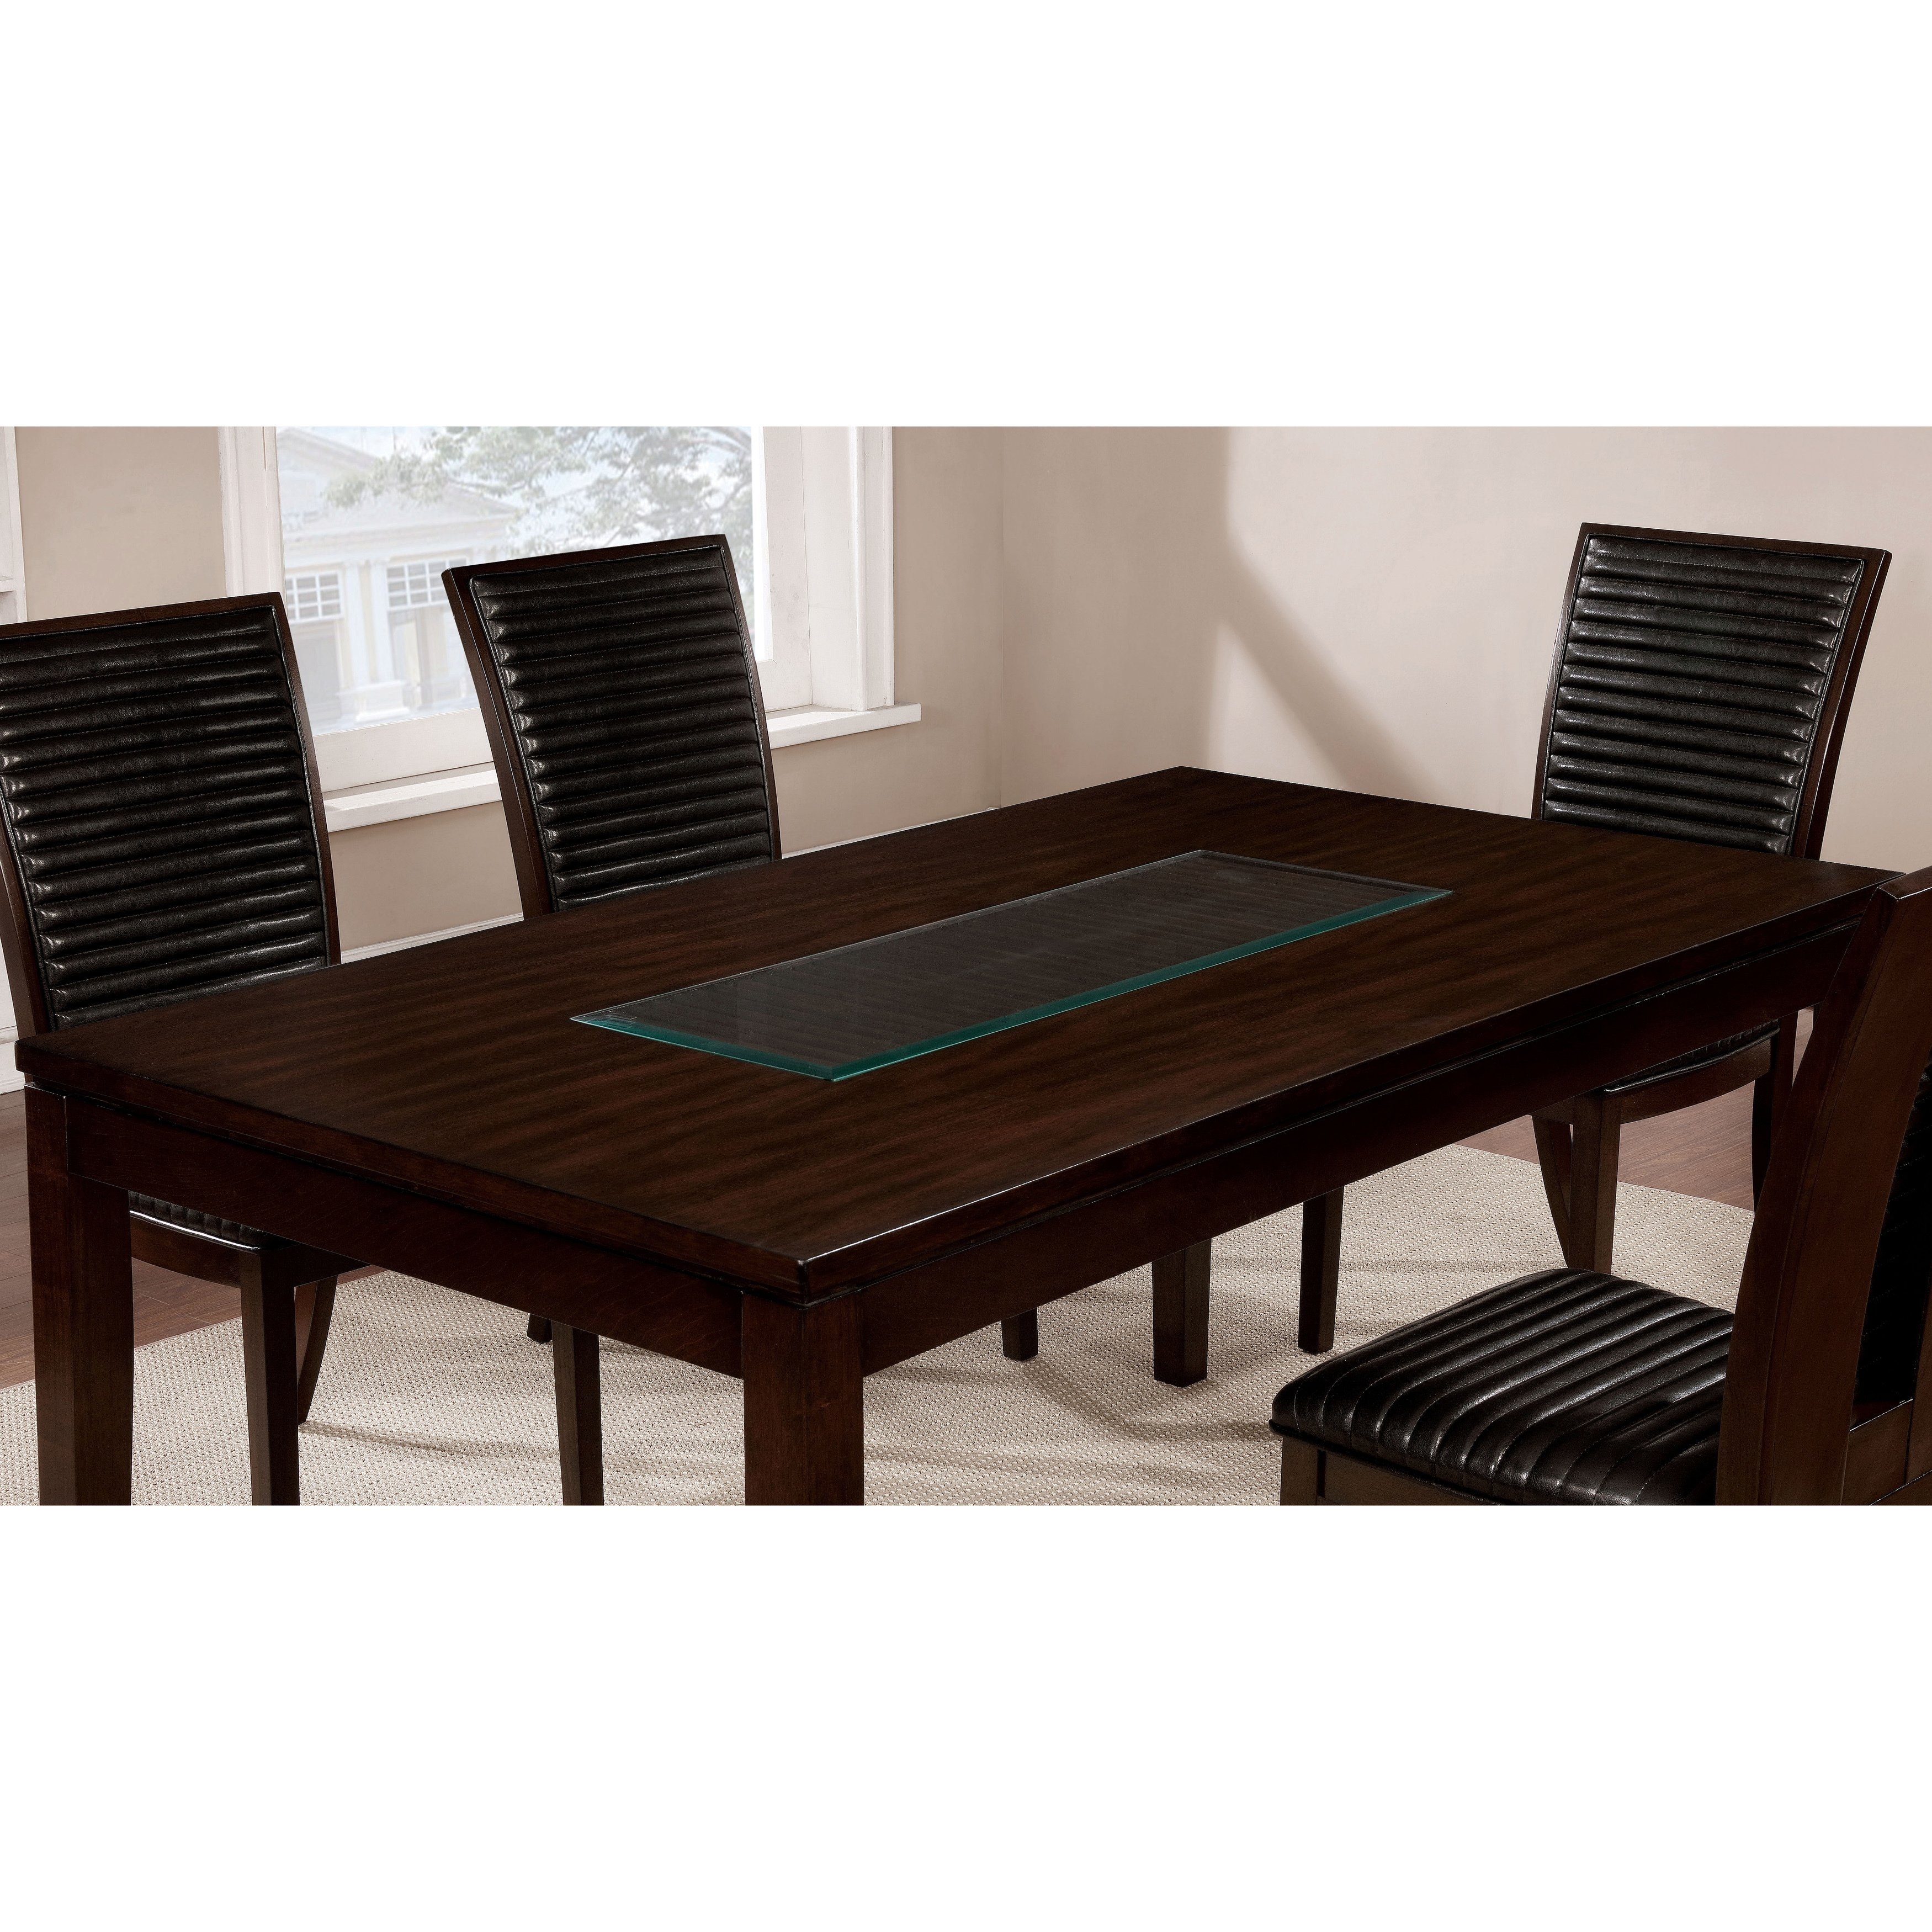 Shop Furniture Of America Gileon Walnut/ Espresso Wood Transitional Intended For 2017 Leon 7 Piece Dining Sets (View 19 of 20)